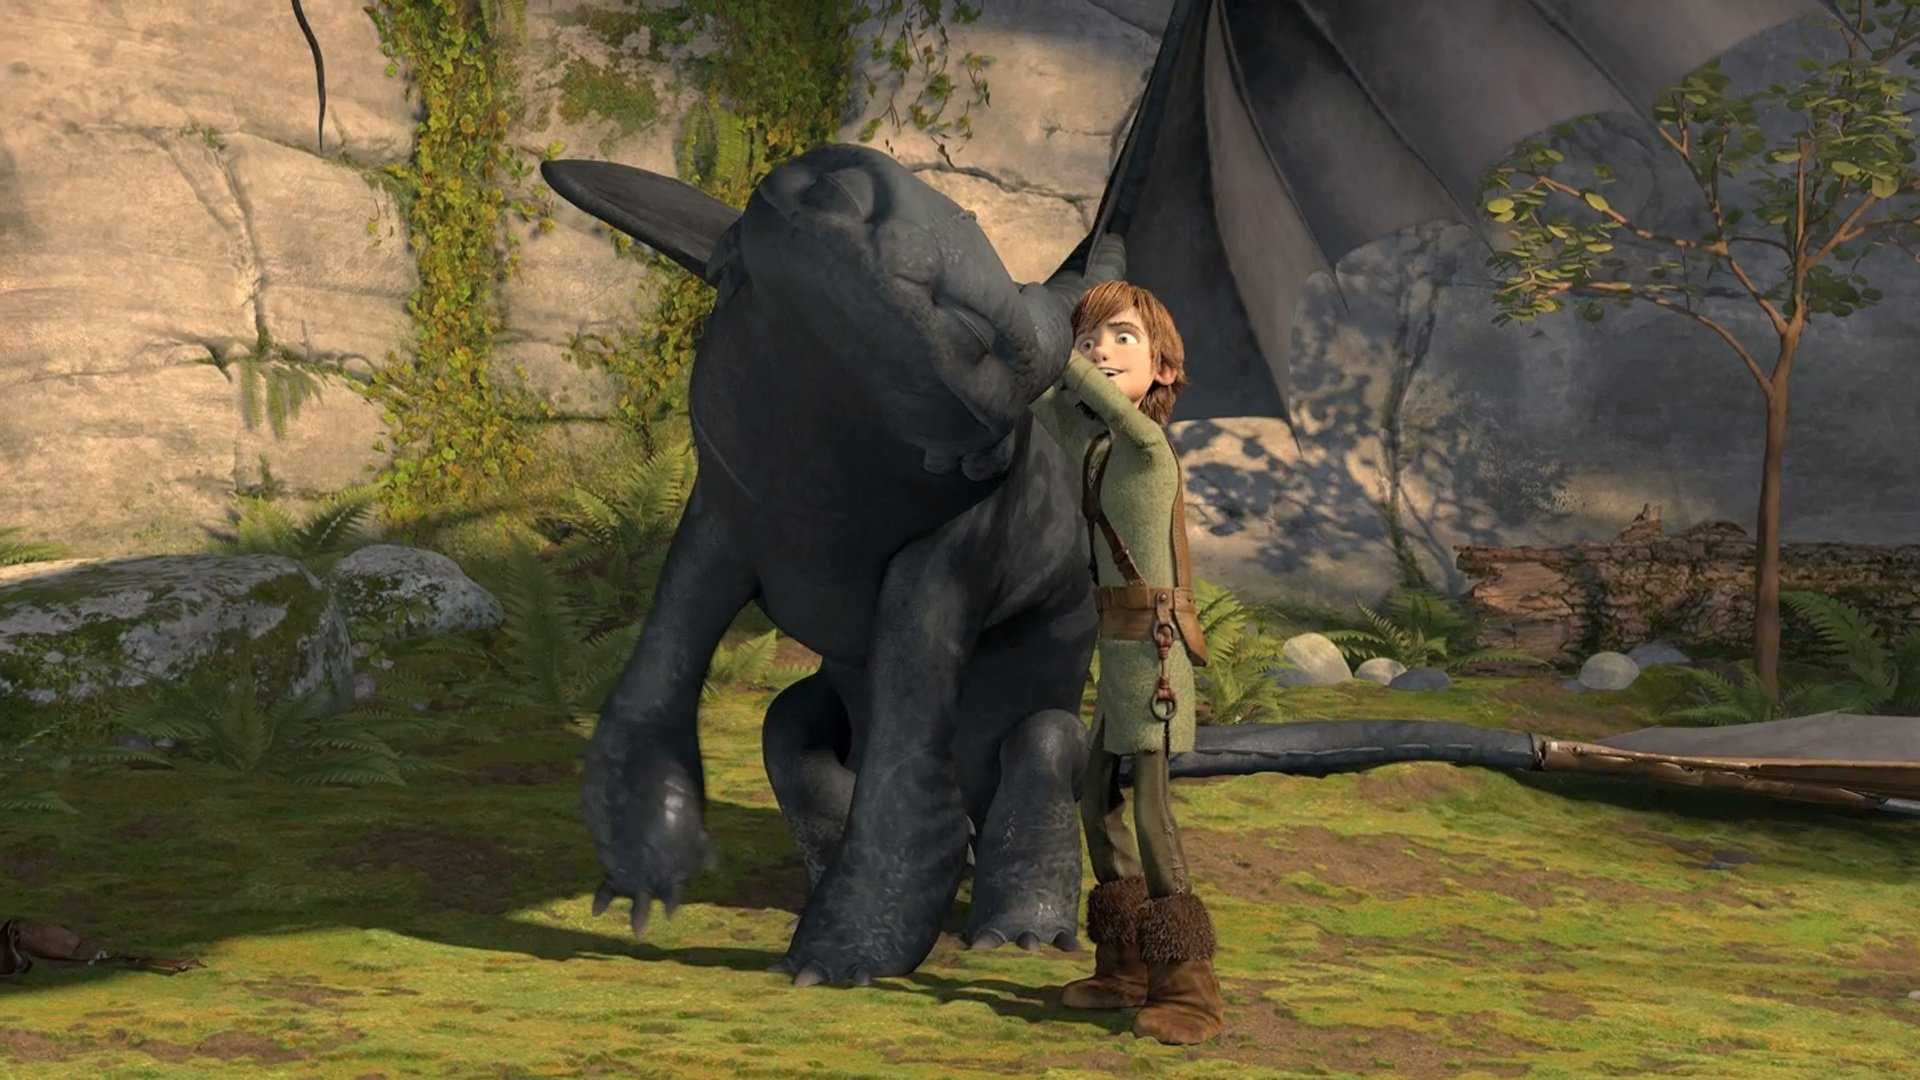 toothless How to Train Your Dragon Hiccup wallpaper backgroundHow To Train Your Dragon 2 Wallpaper Toothless